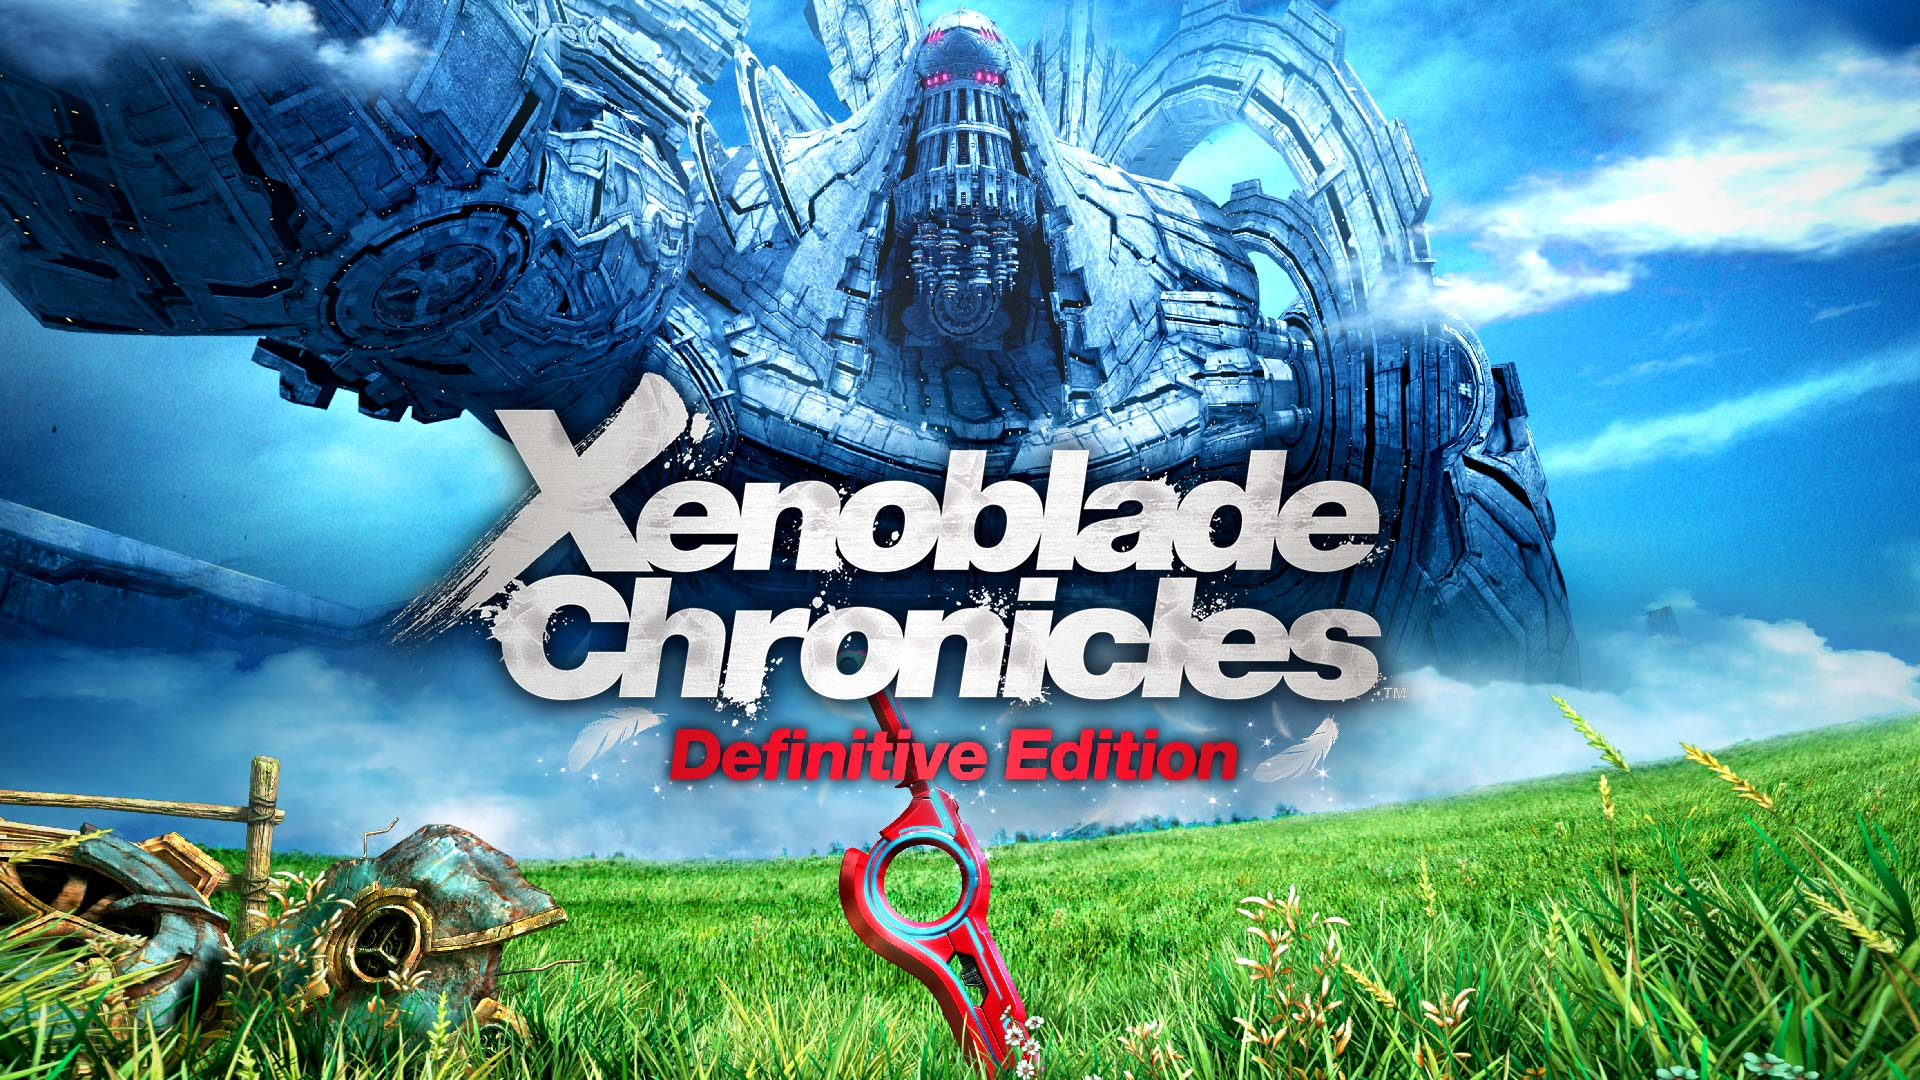 Xenoblade Chronicles™: Definitive Edition